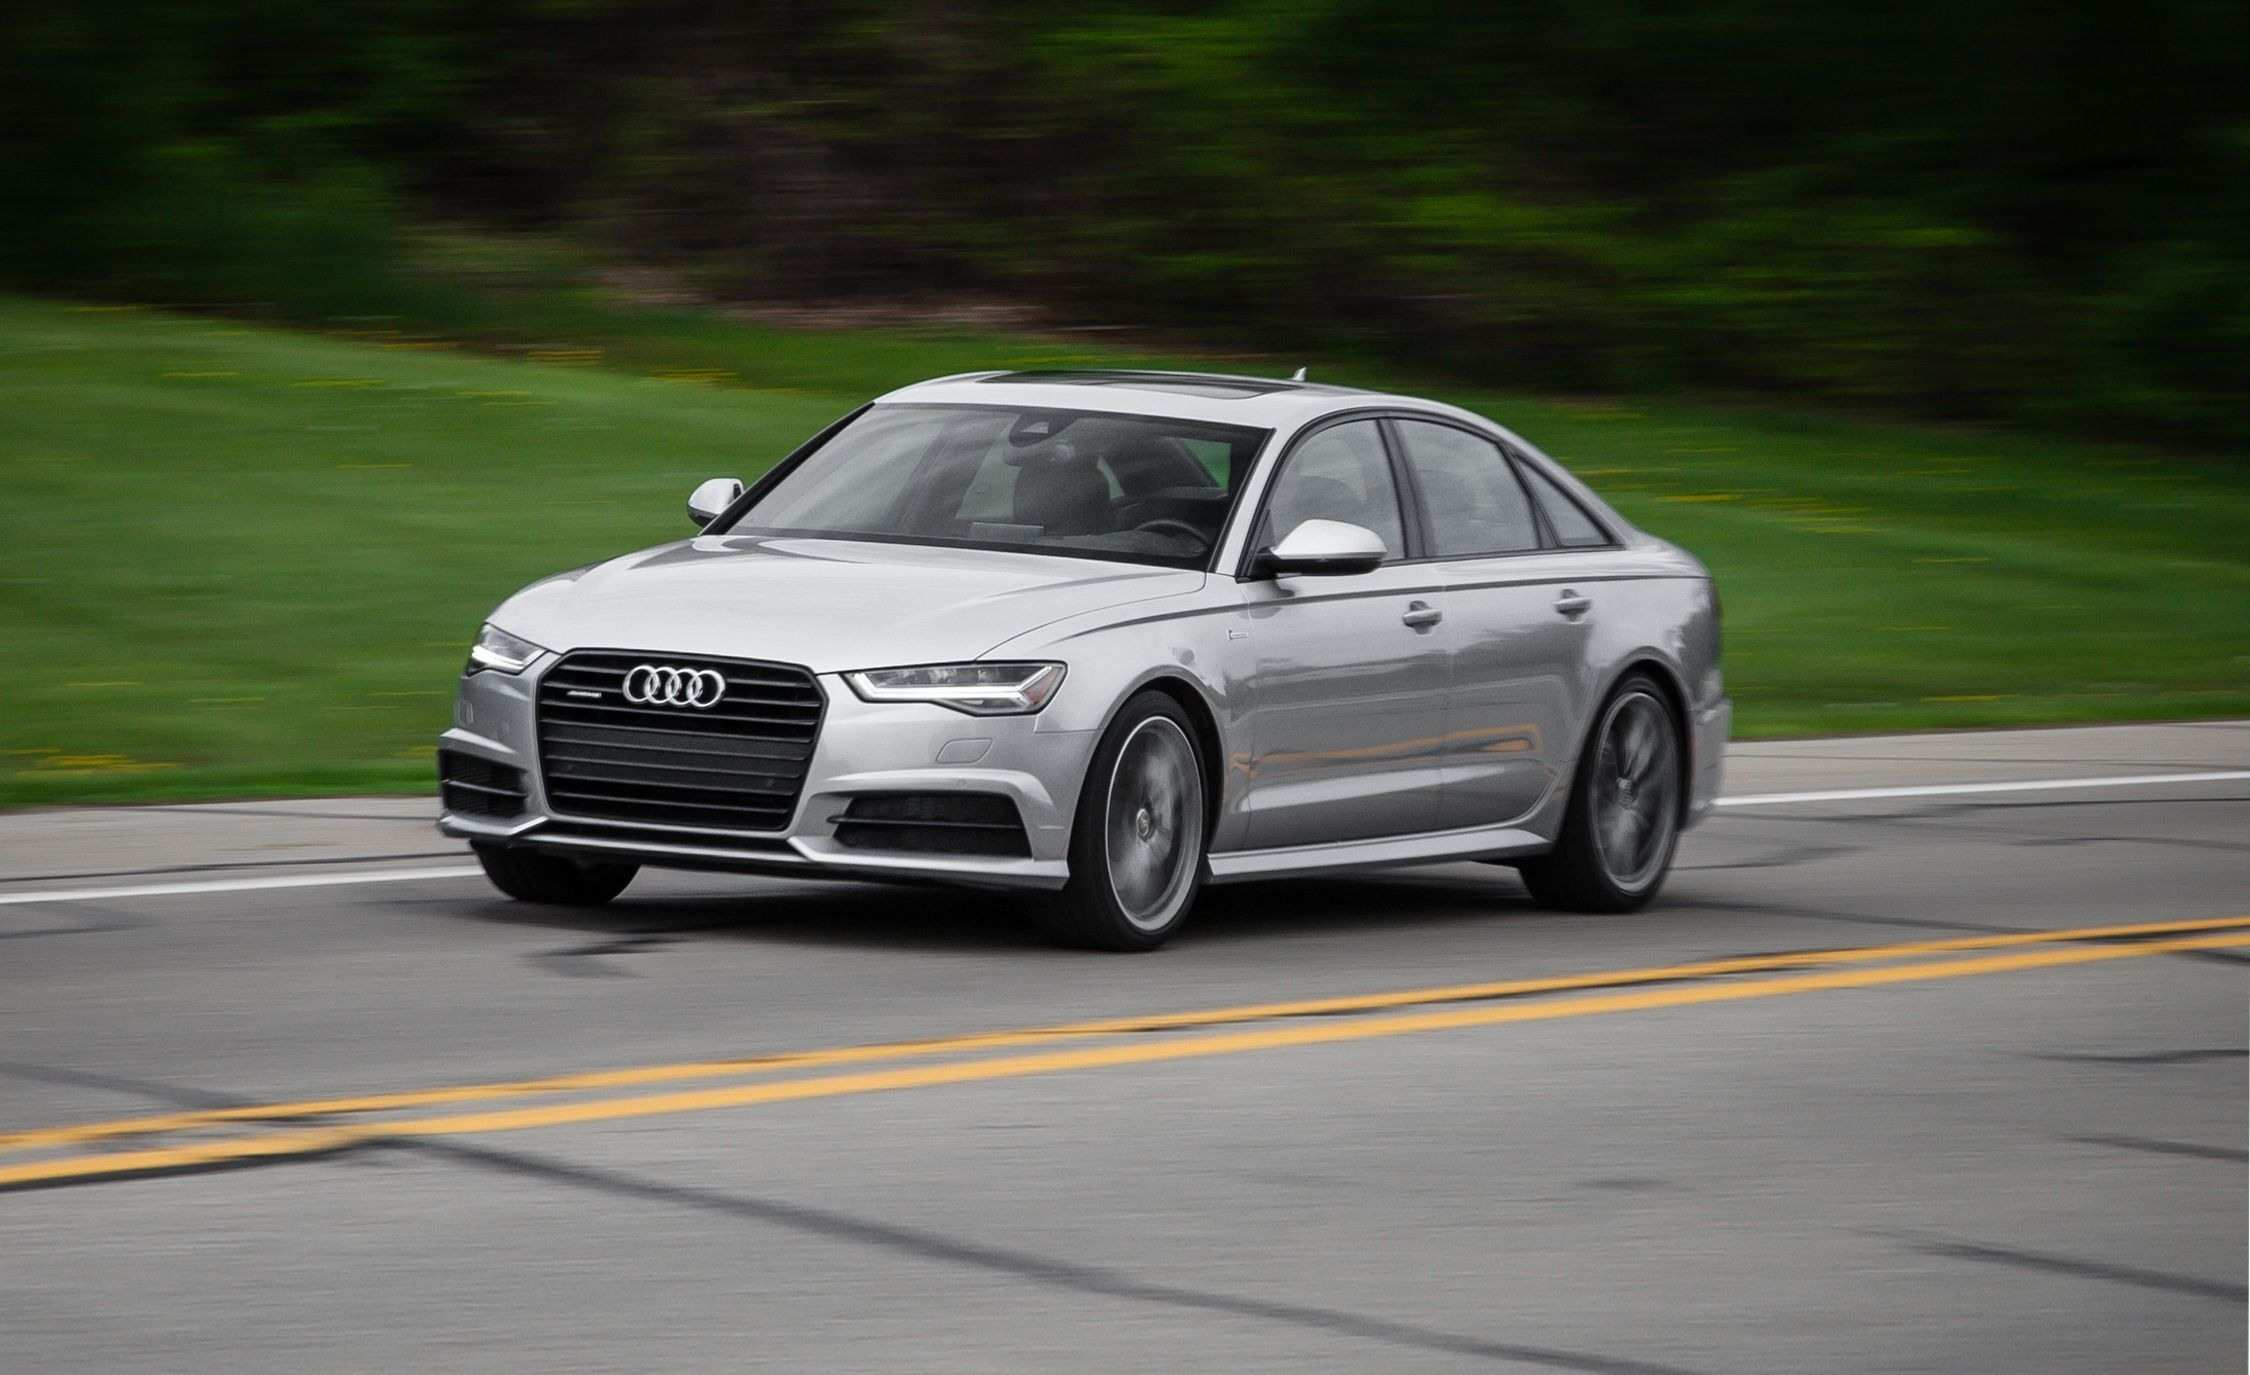 36 All New New 2019 Audi Vehicles Redesign And Price Speed Test with New 2019 Audi Vehicles Redesign And Price